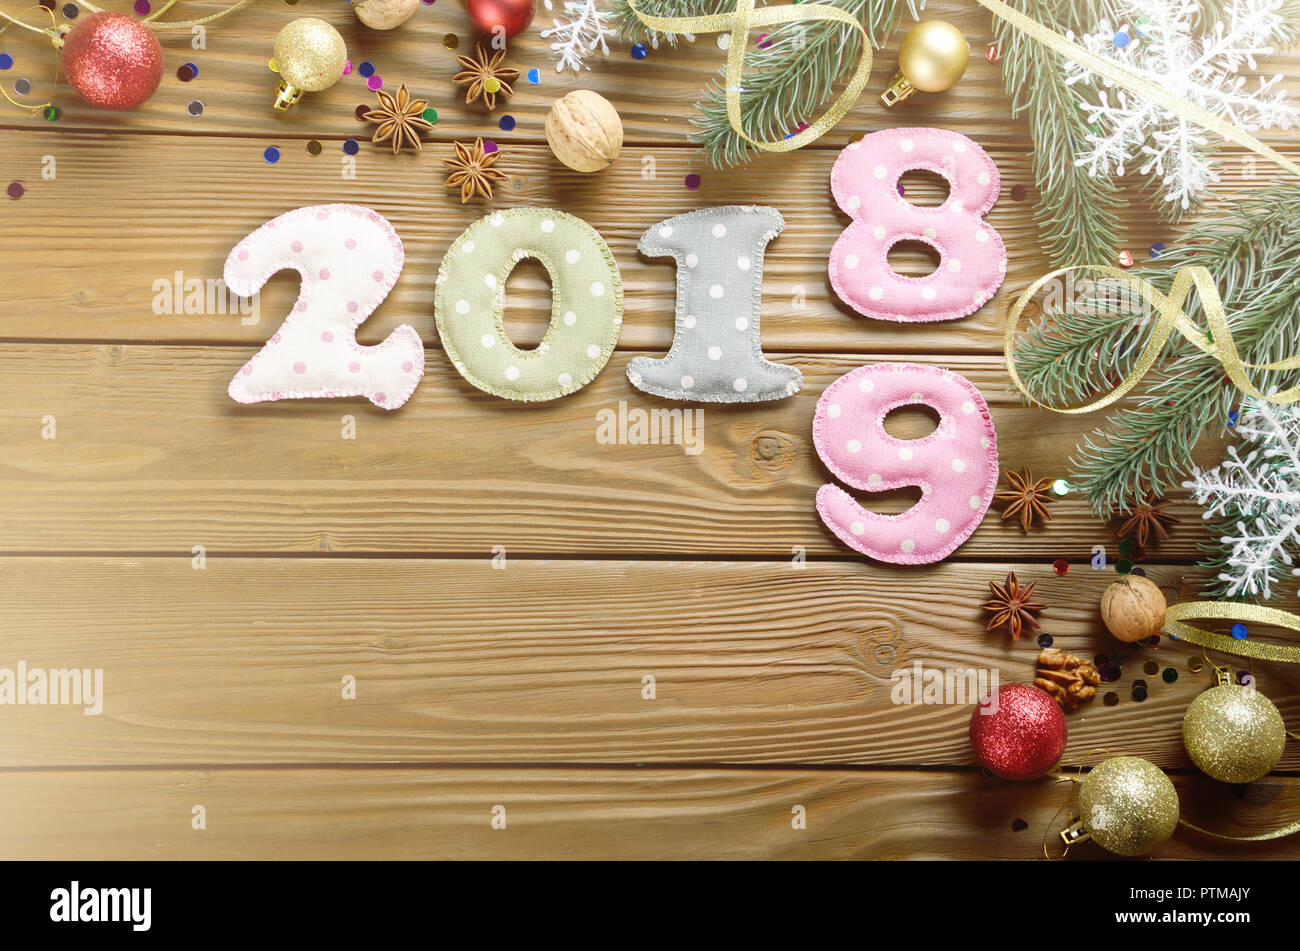 Colorful stitched digits 2 0 1 8 9 of polkadot fabric with Christmas decorations flat lyed on wooden background. Place for text - Stock Image